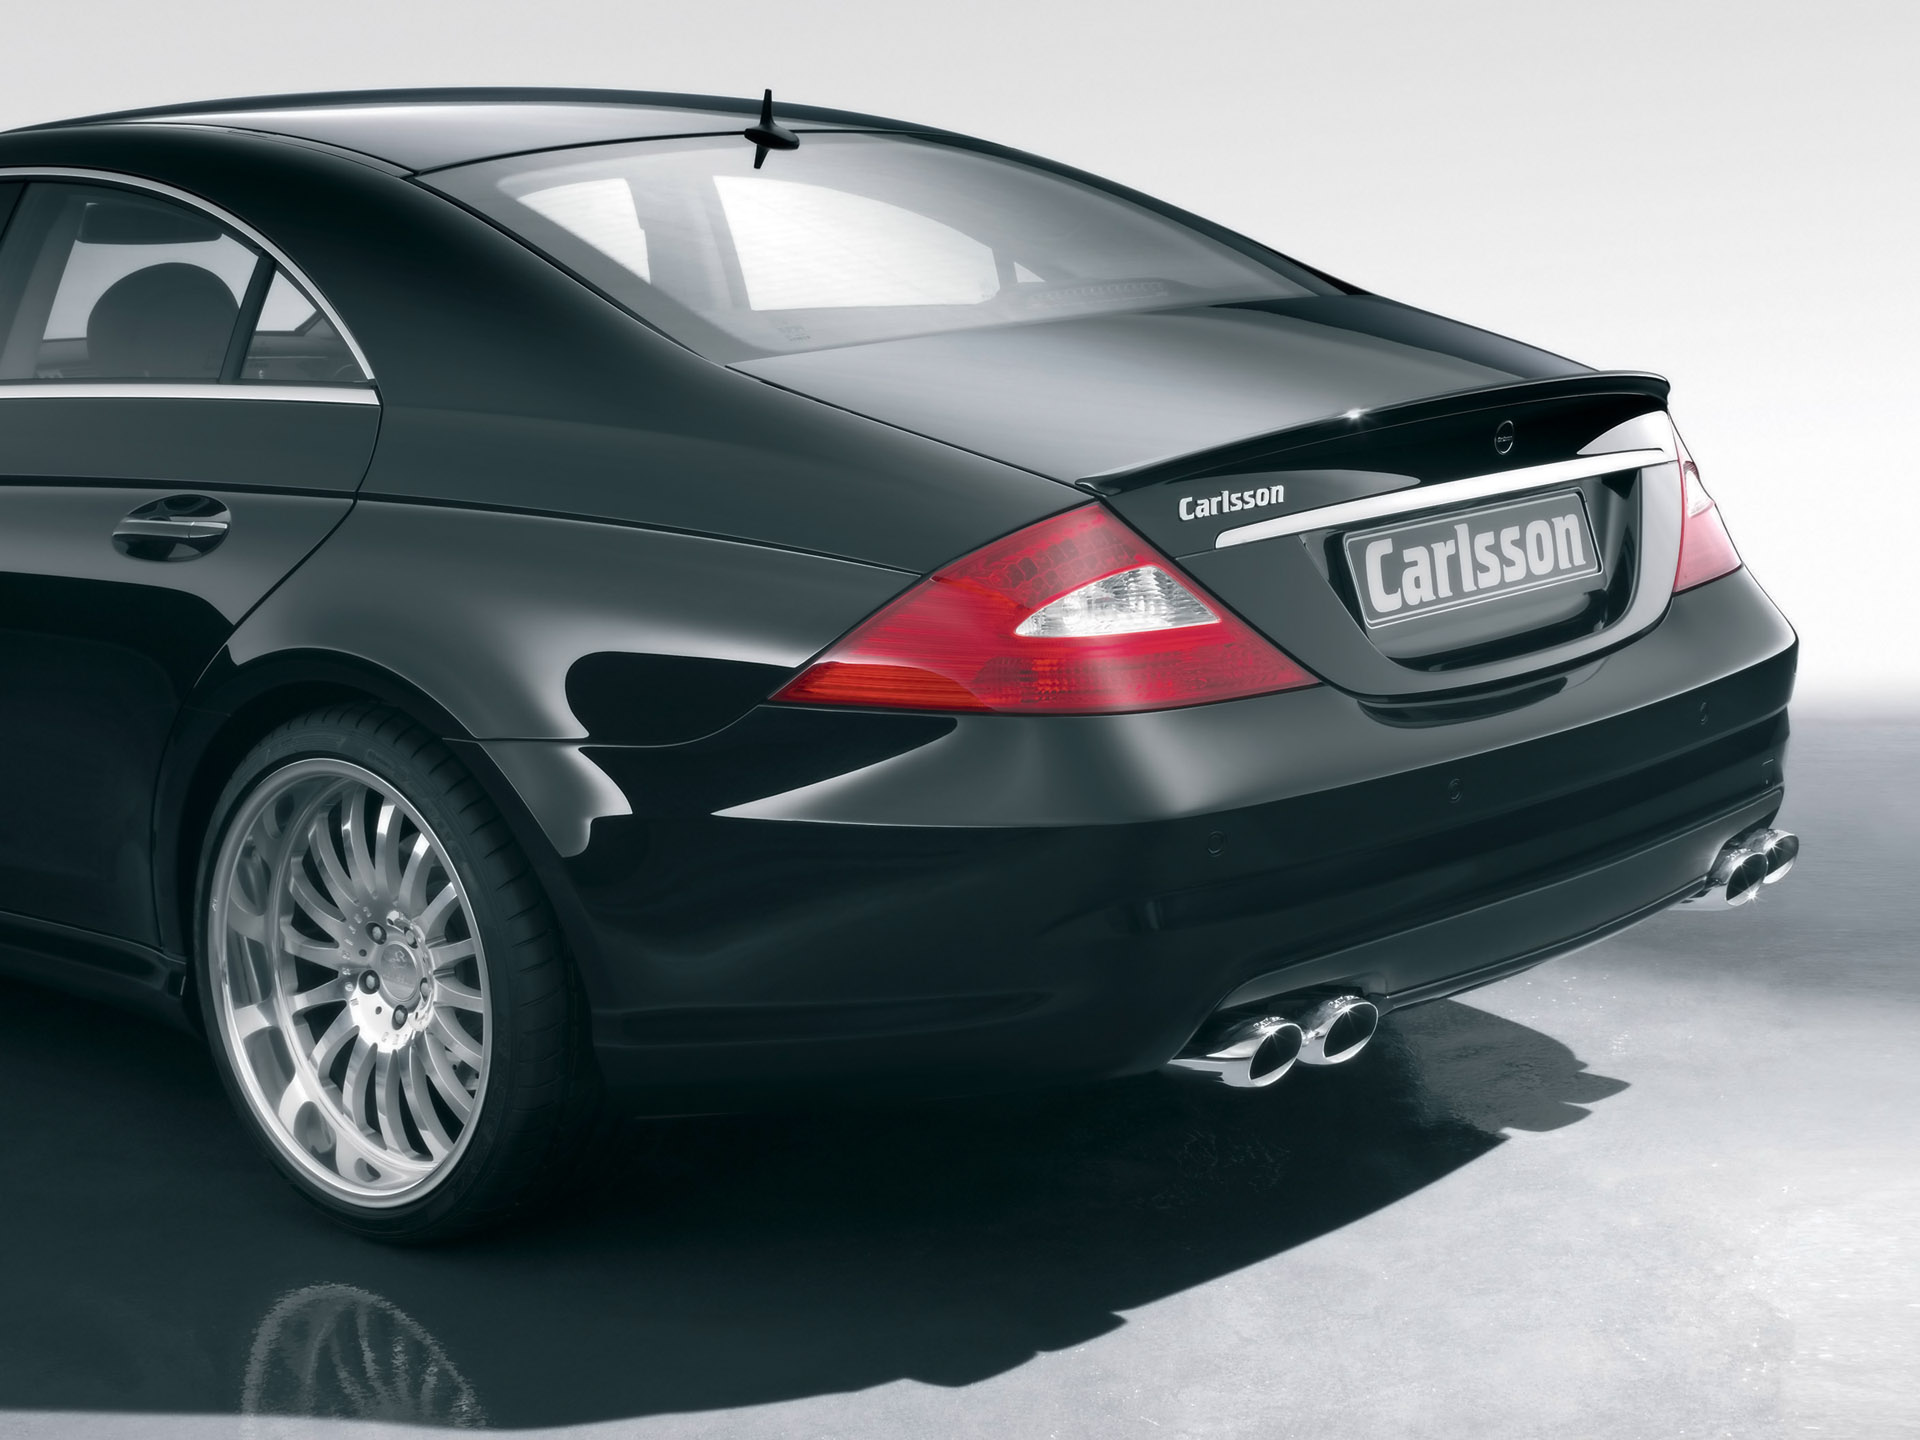 2005 Mercedes-Benz CLS 500 Image. https://www.conceptcarz.com/images/Mercedes-Benz/2005-Carlsson ...